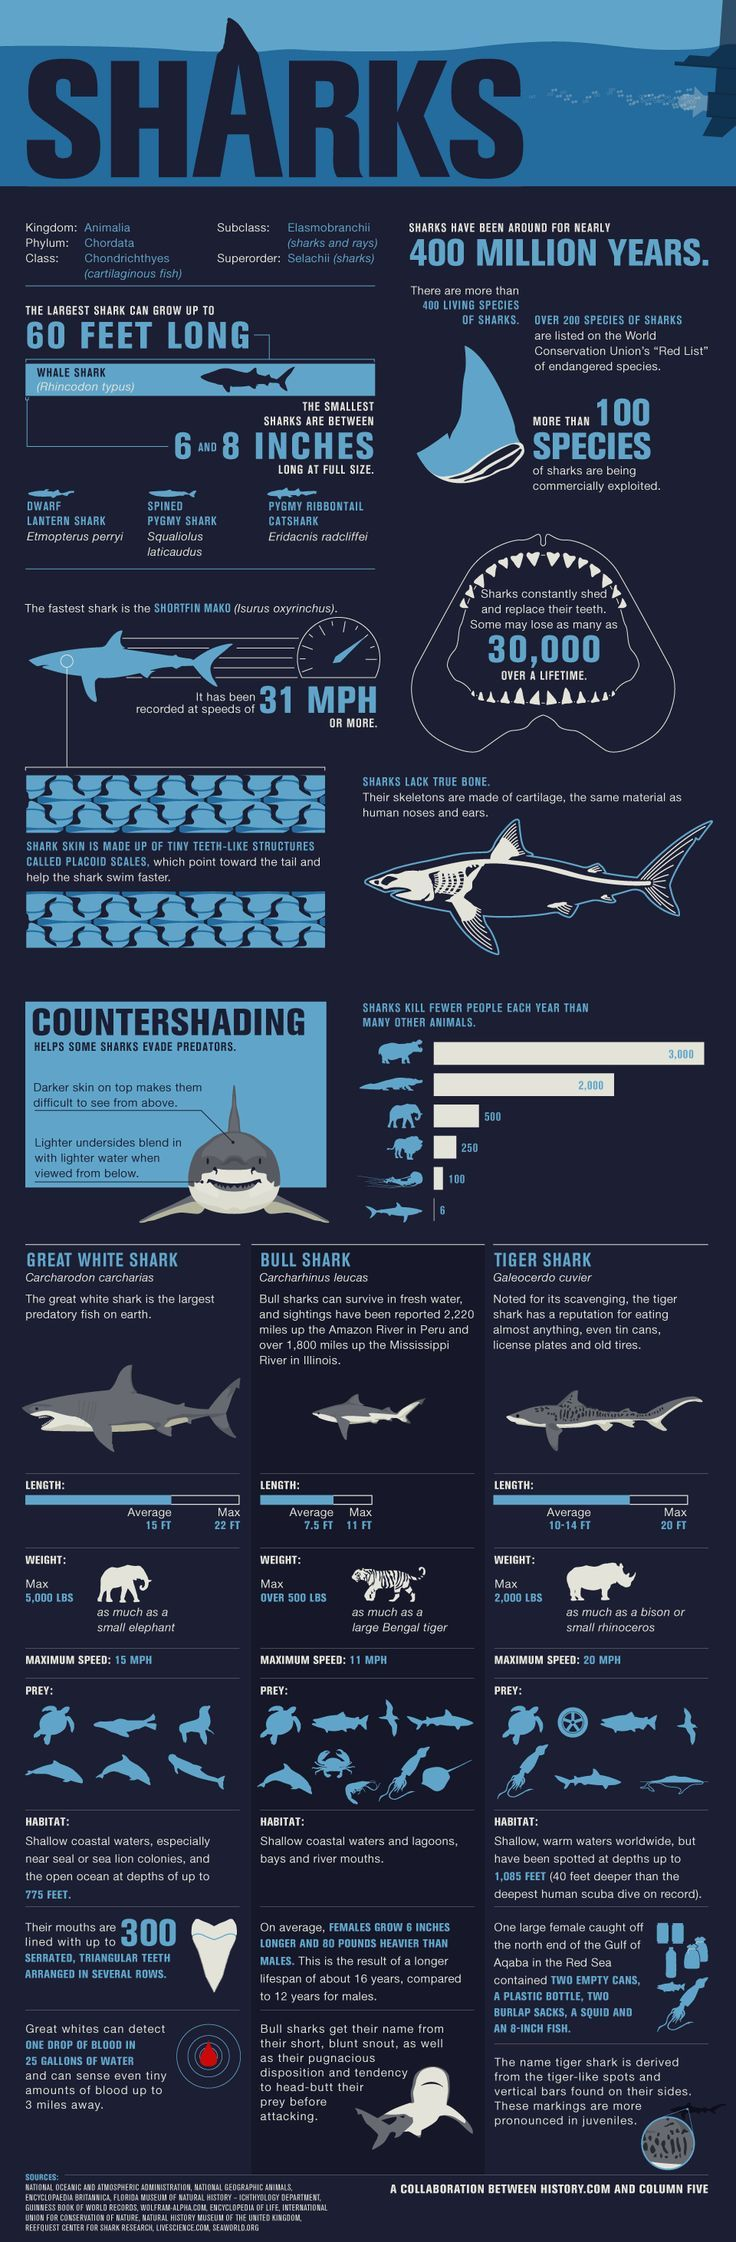 Sharks FAQ sheet - Comprehensive shark guide.  Know your sharks! ♥ Want to scuba dive all the time?  Try This Simple System That Helped me see some amazing dives and marine life:  https://successrx.leadpages.net/pt-scubadiving/    #scuba #diving #sharks http://www.deepbluediving.org/best-scuba-diving-mask-reviews/